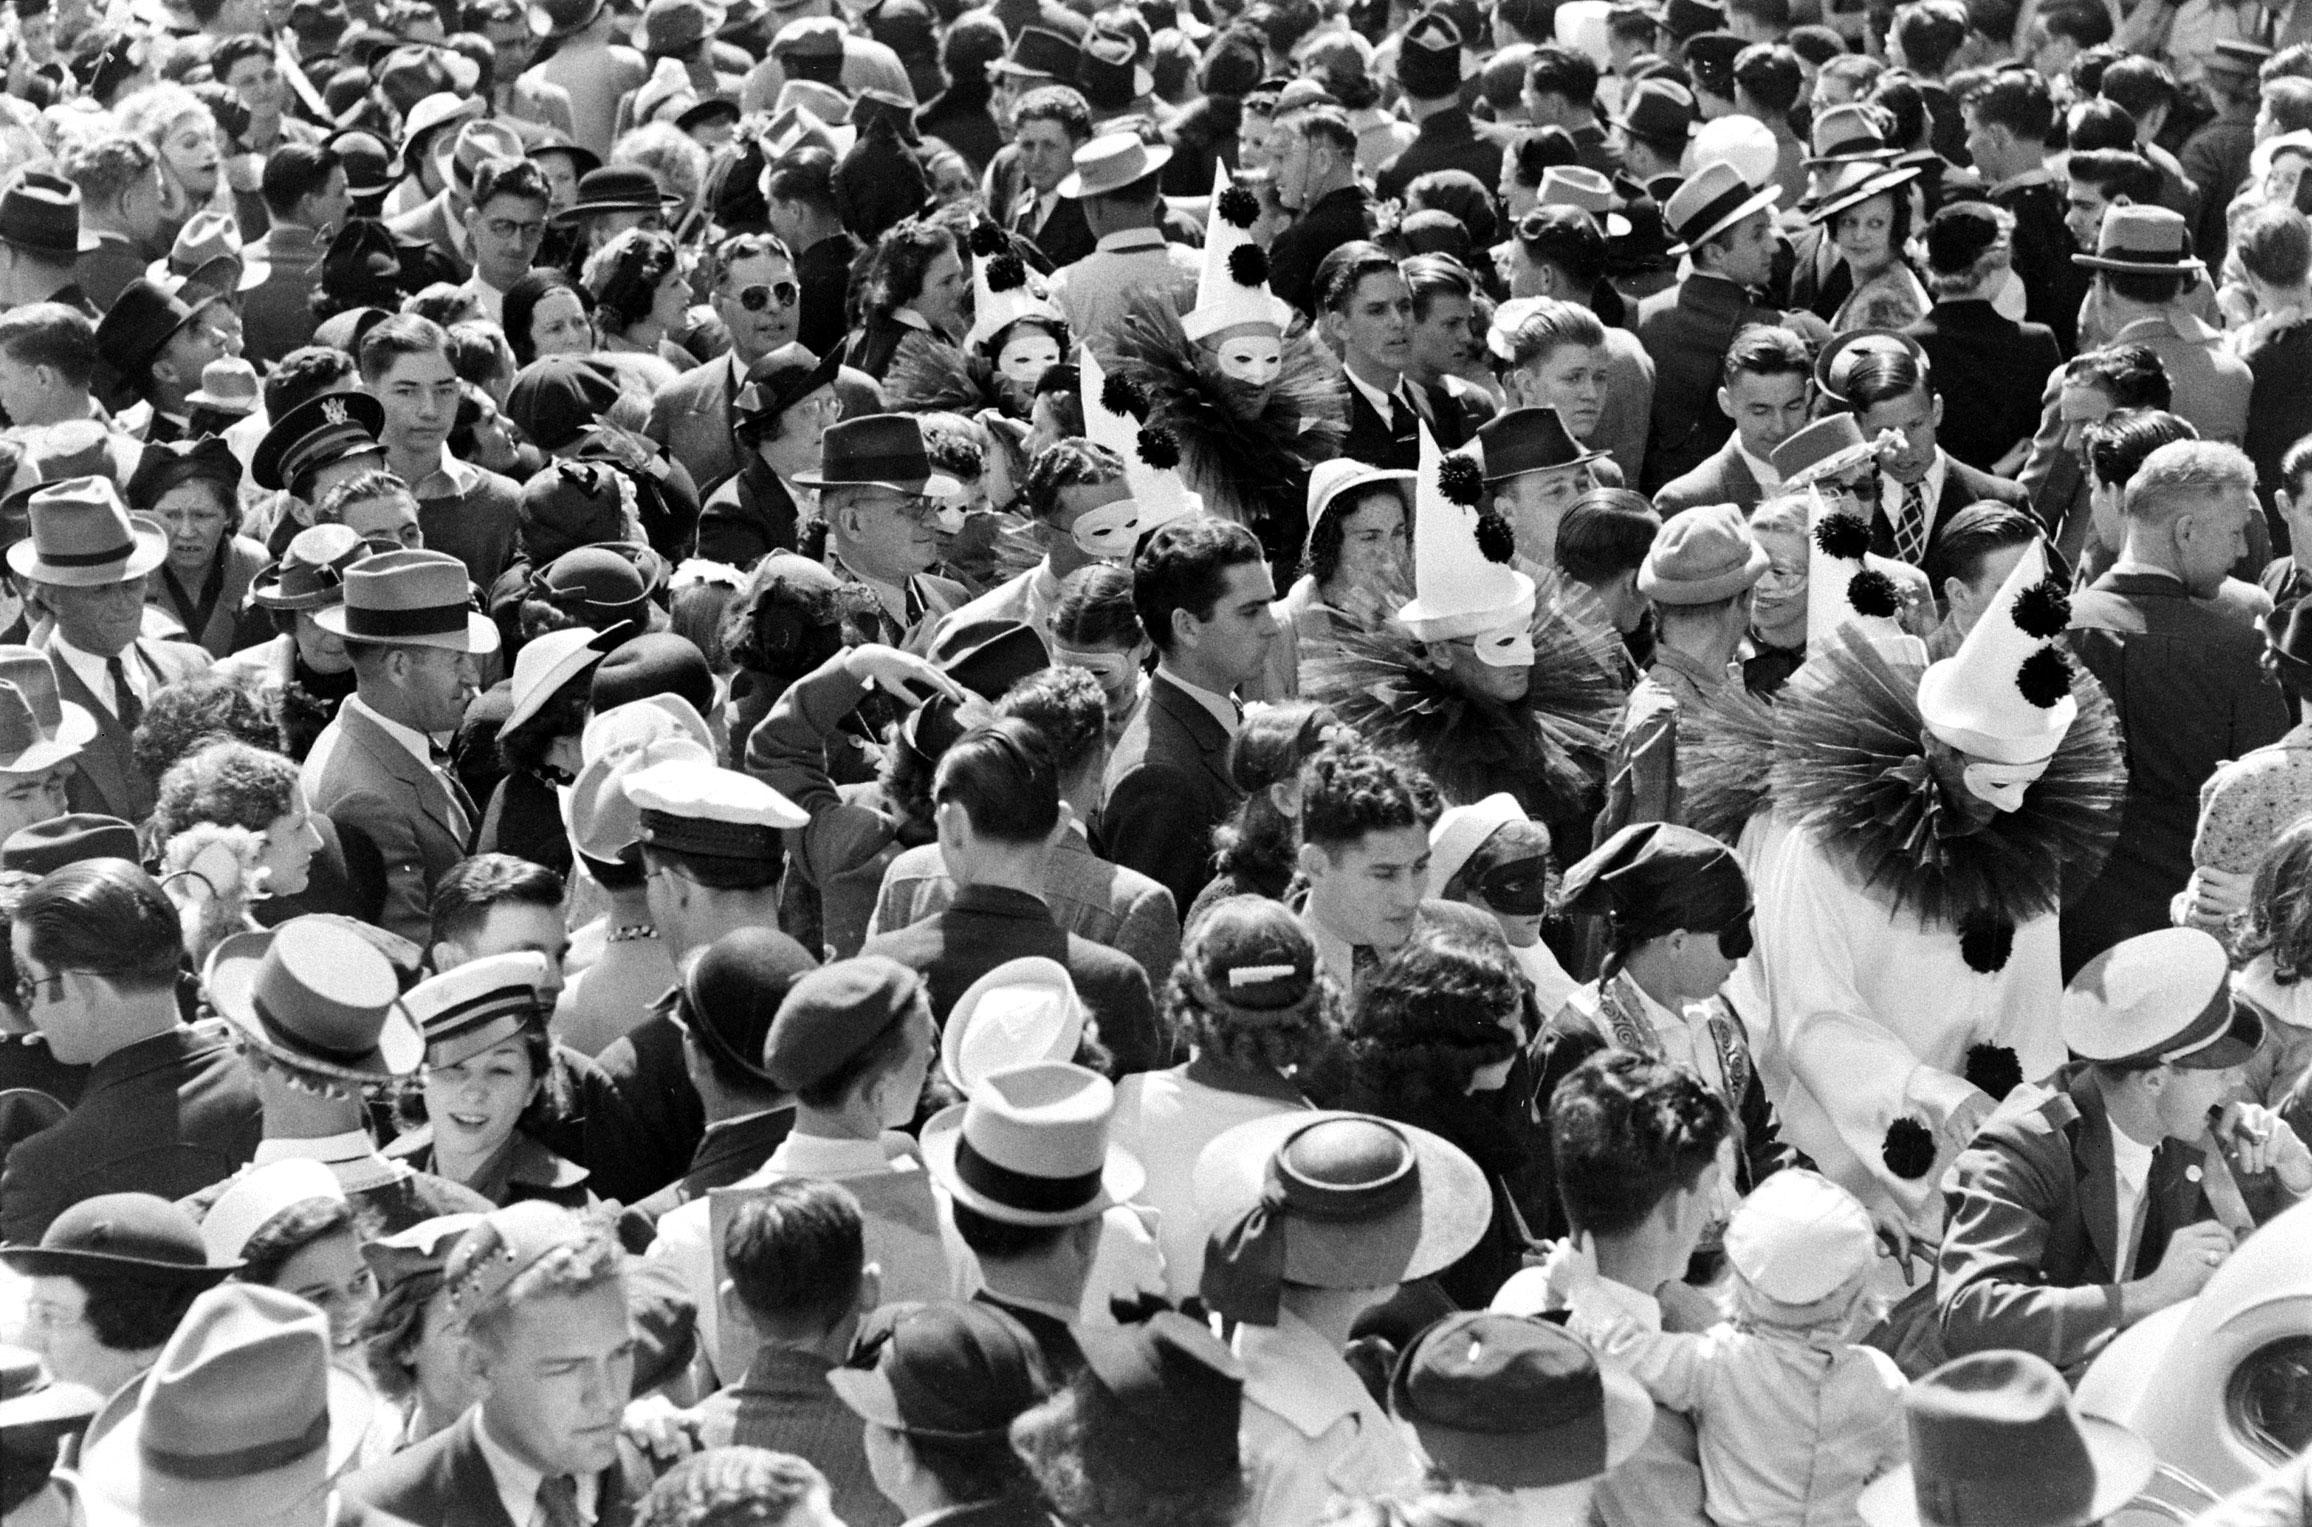 Mardi Gras crowd, New Orleans, 1938.